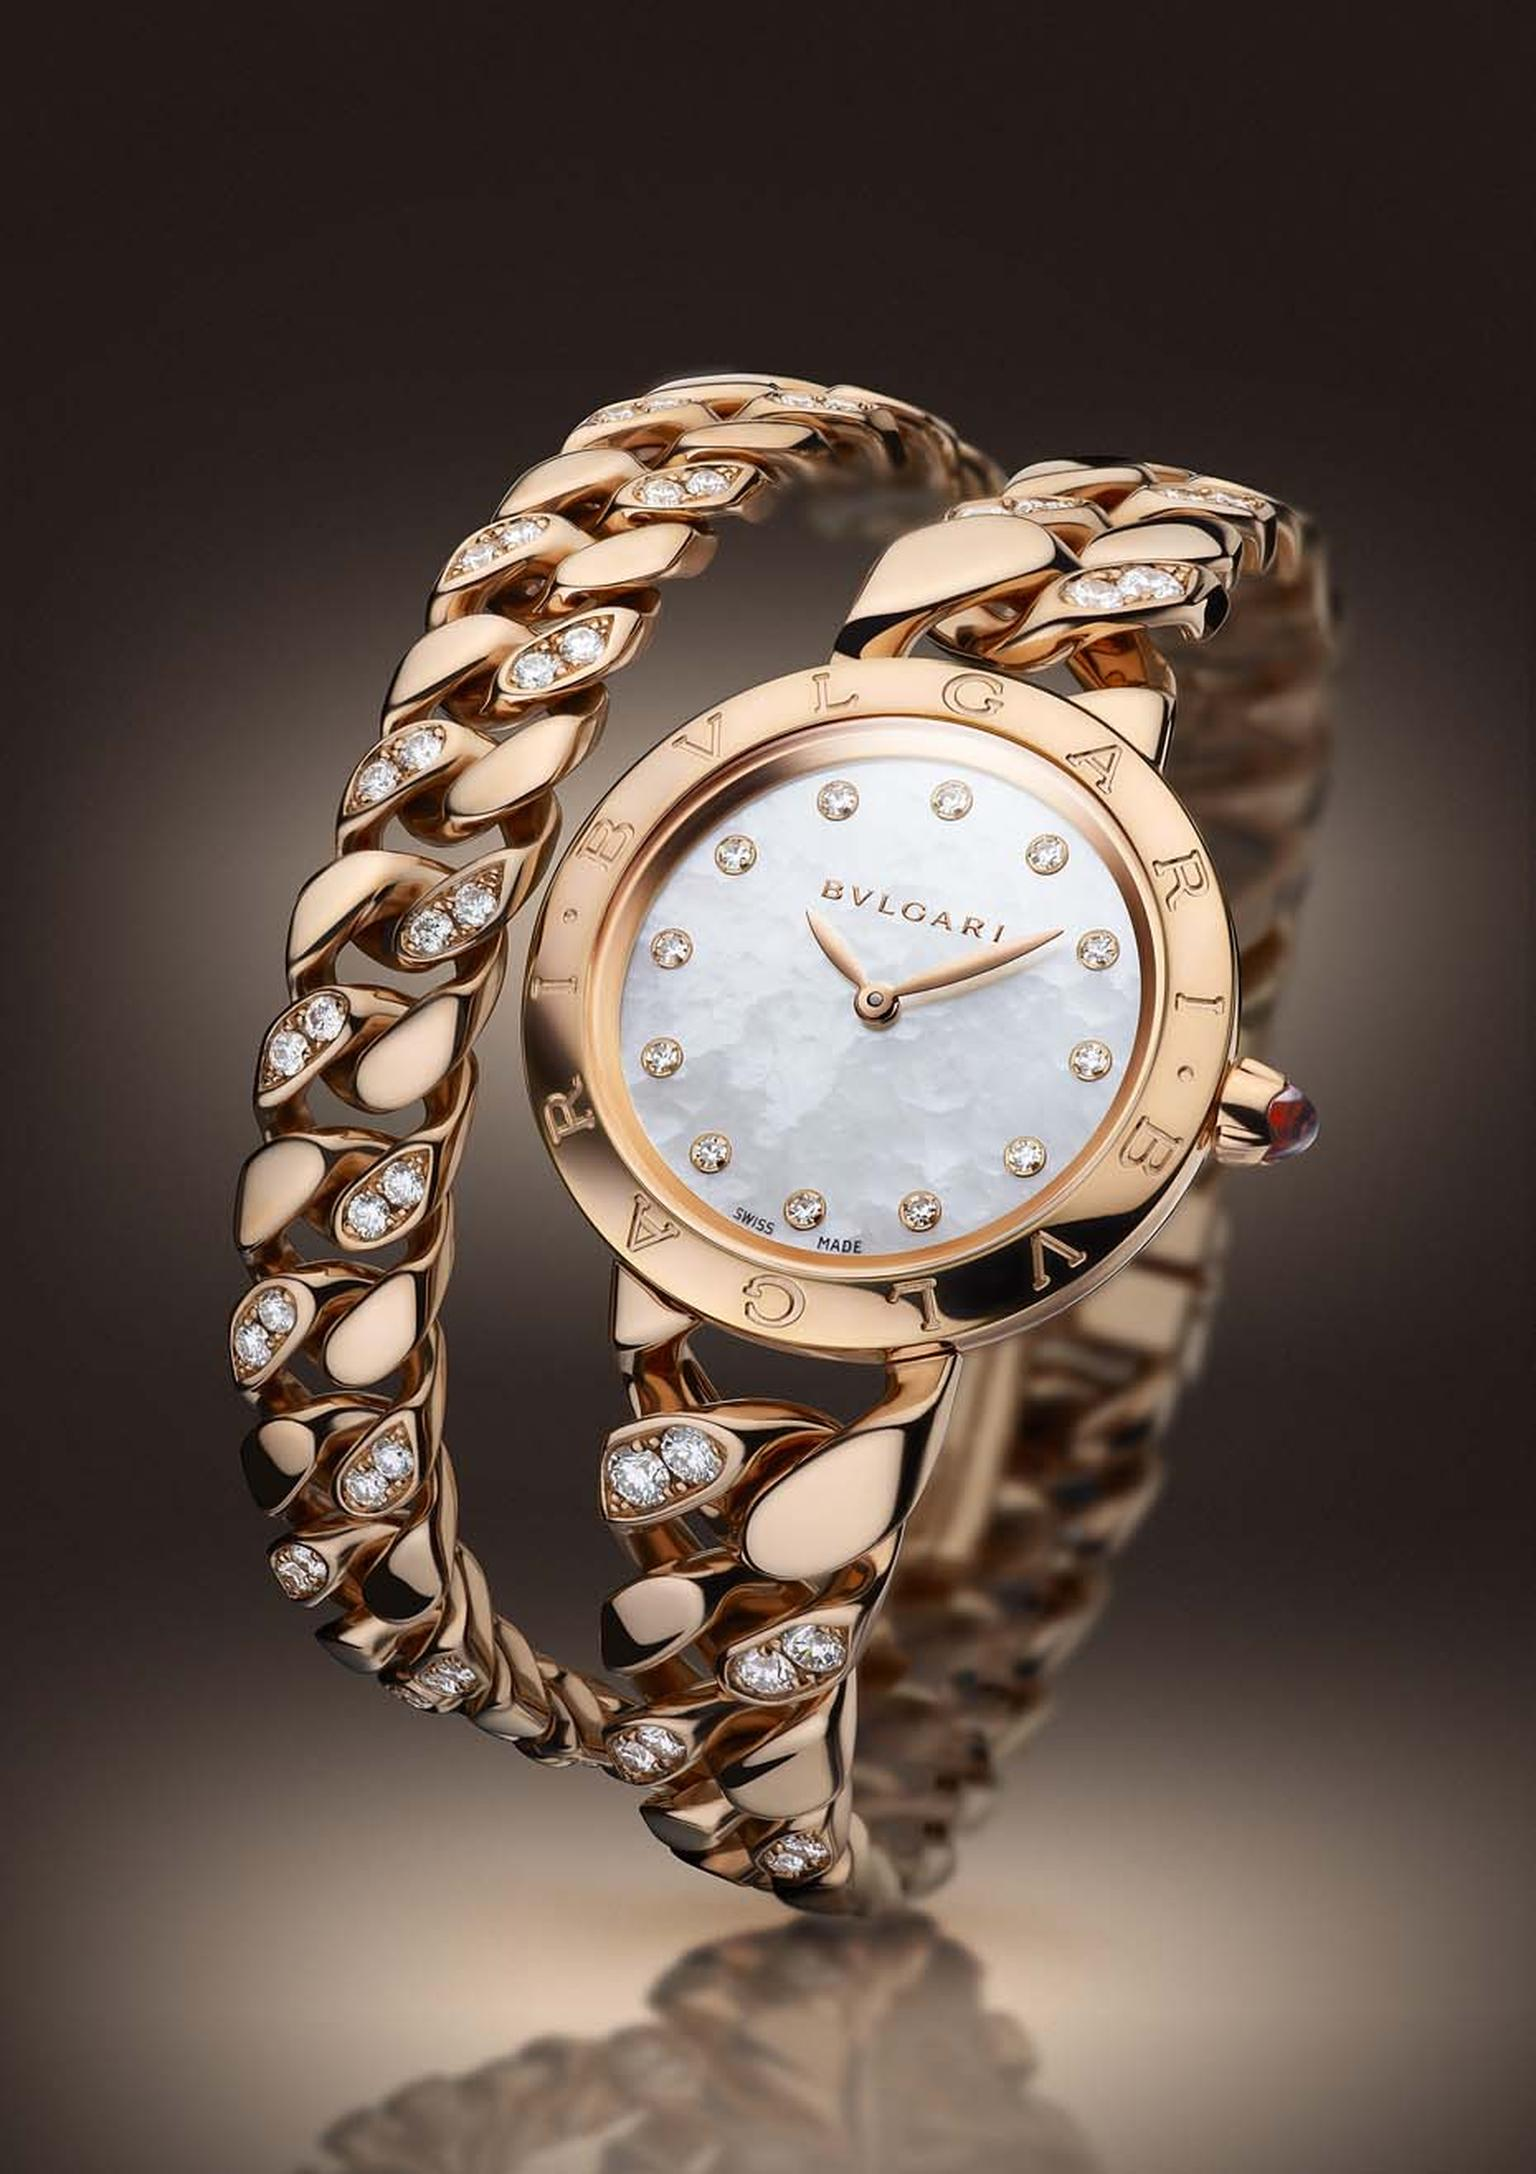 The rose gold Bulgari Catene bracelet watch with a Calibre B046 Swiss quartz movement, created especially for the Italian jewellery house.